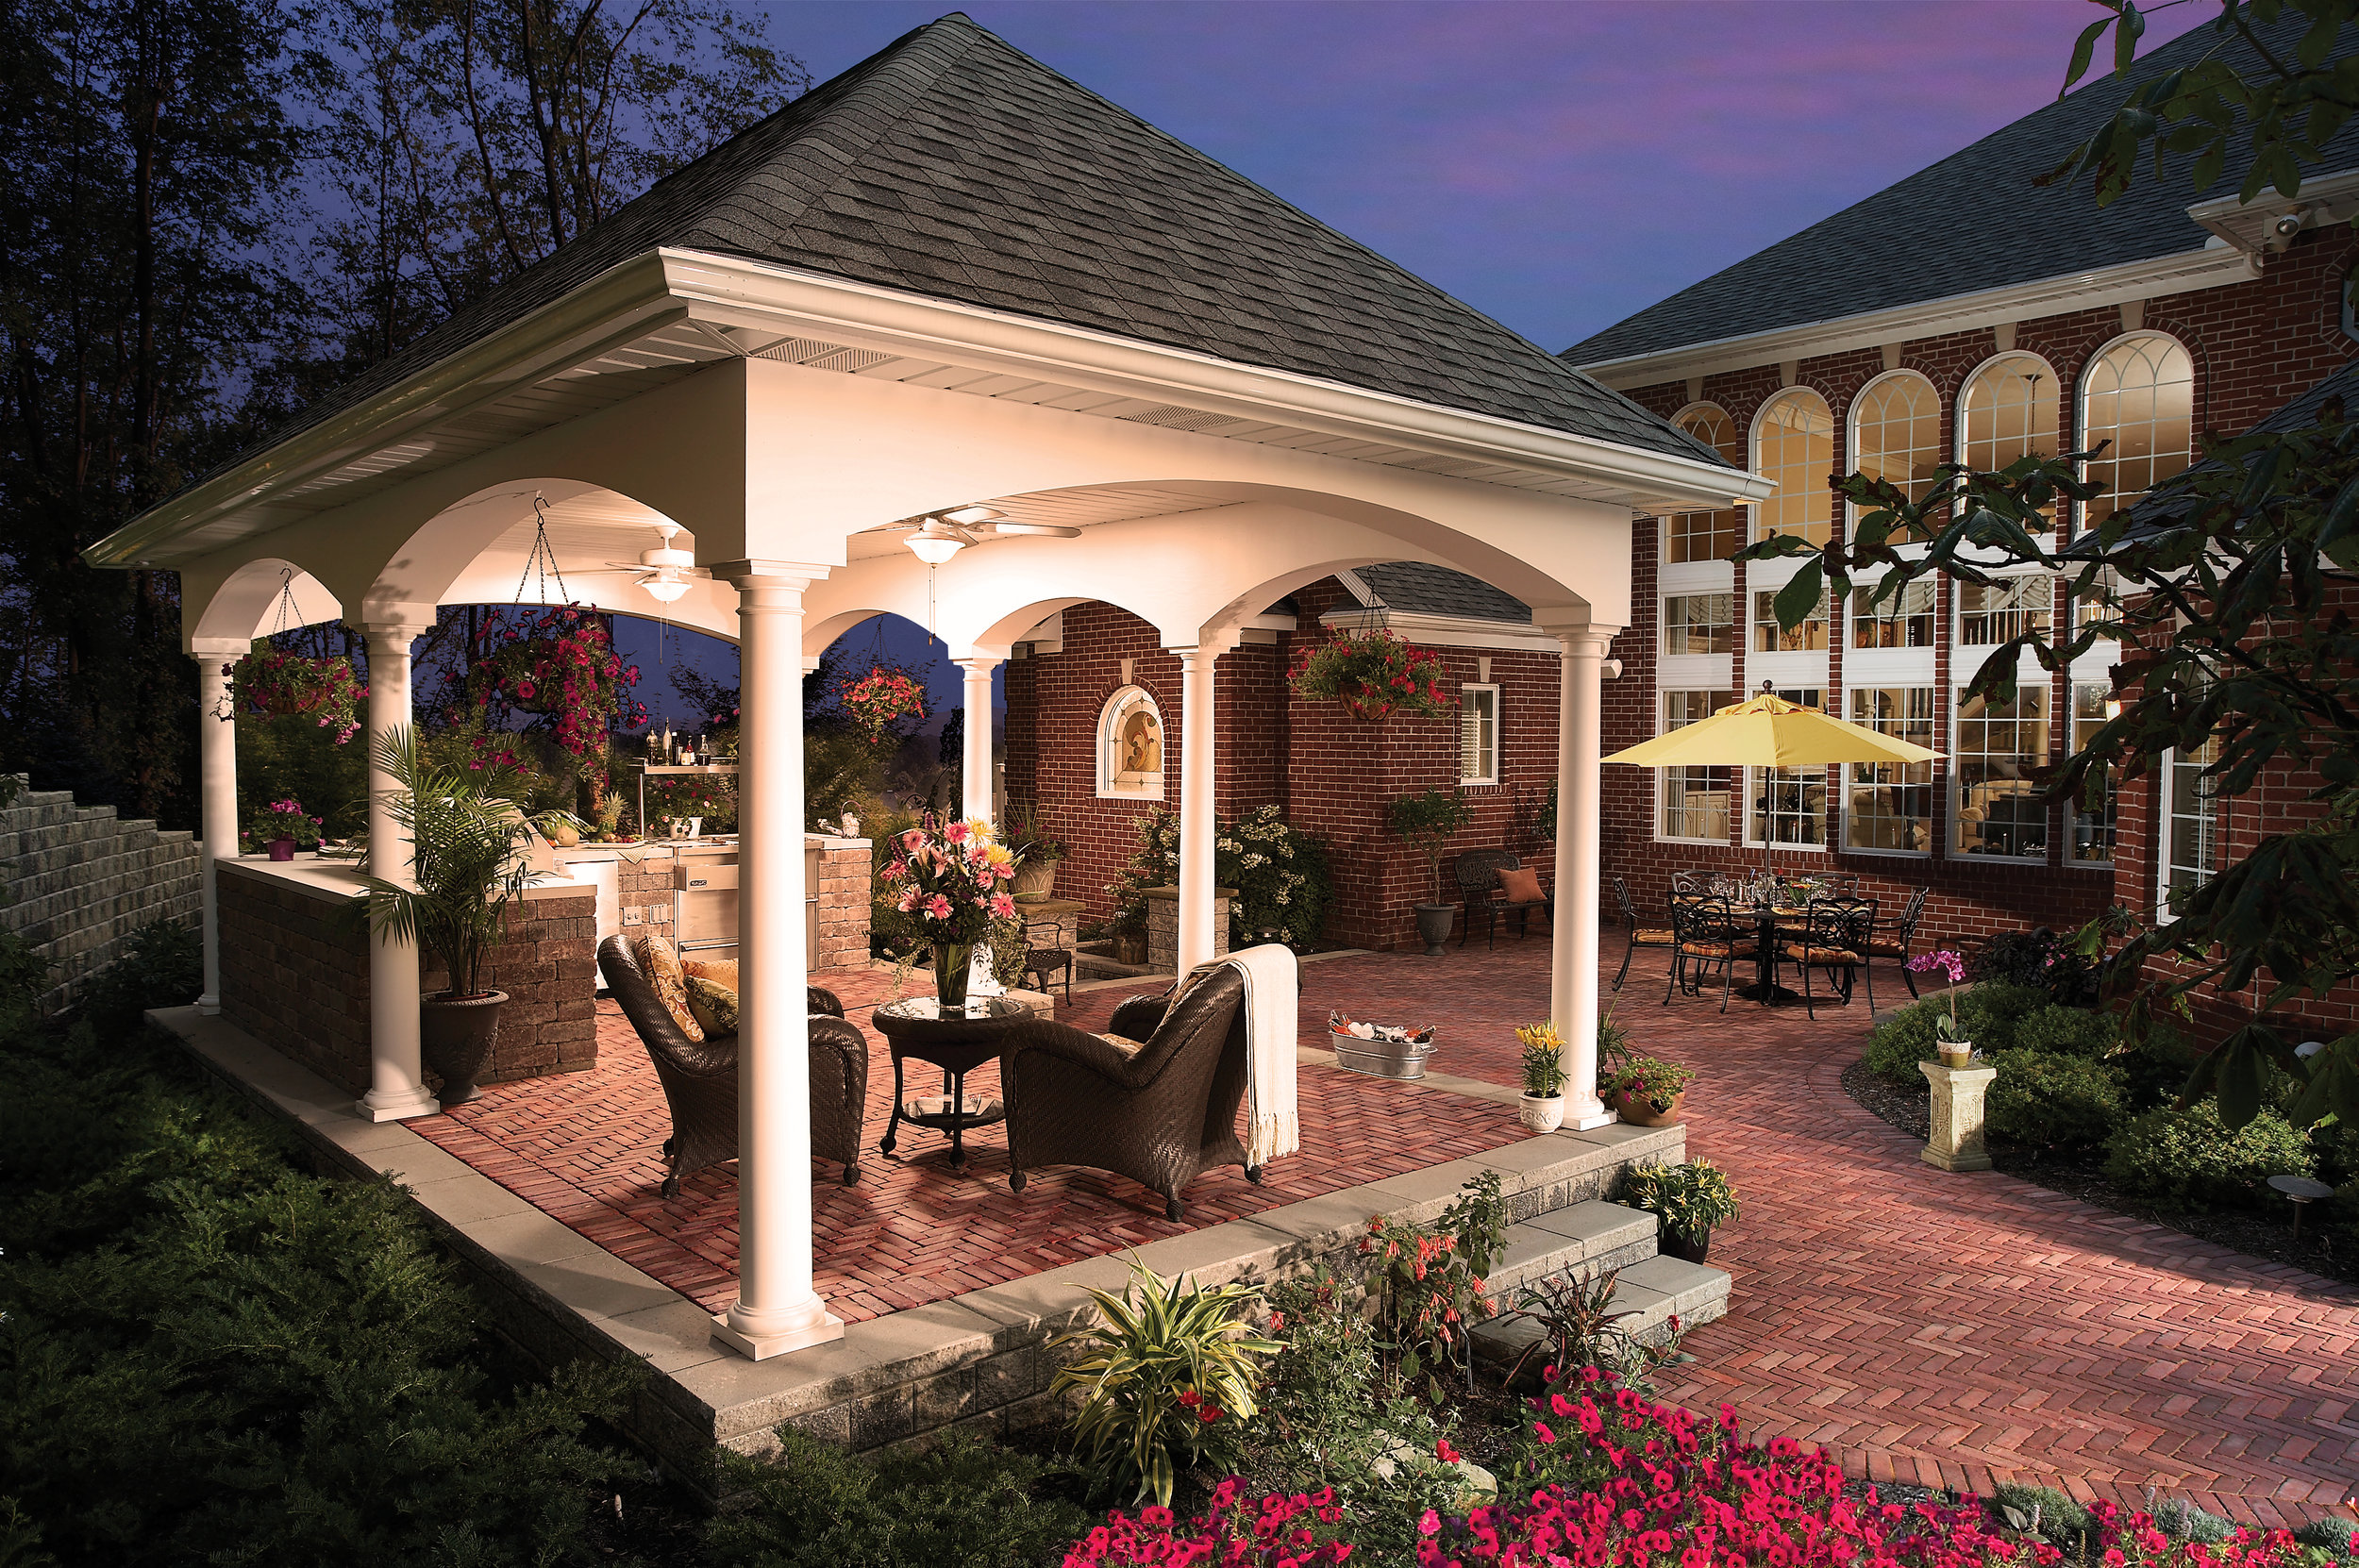 5 Landscaping Ideas for Creating a Relaxing Backyard Getaway in Elmhurst, IL